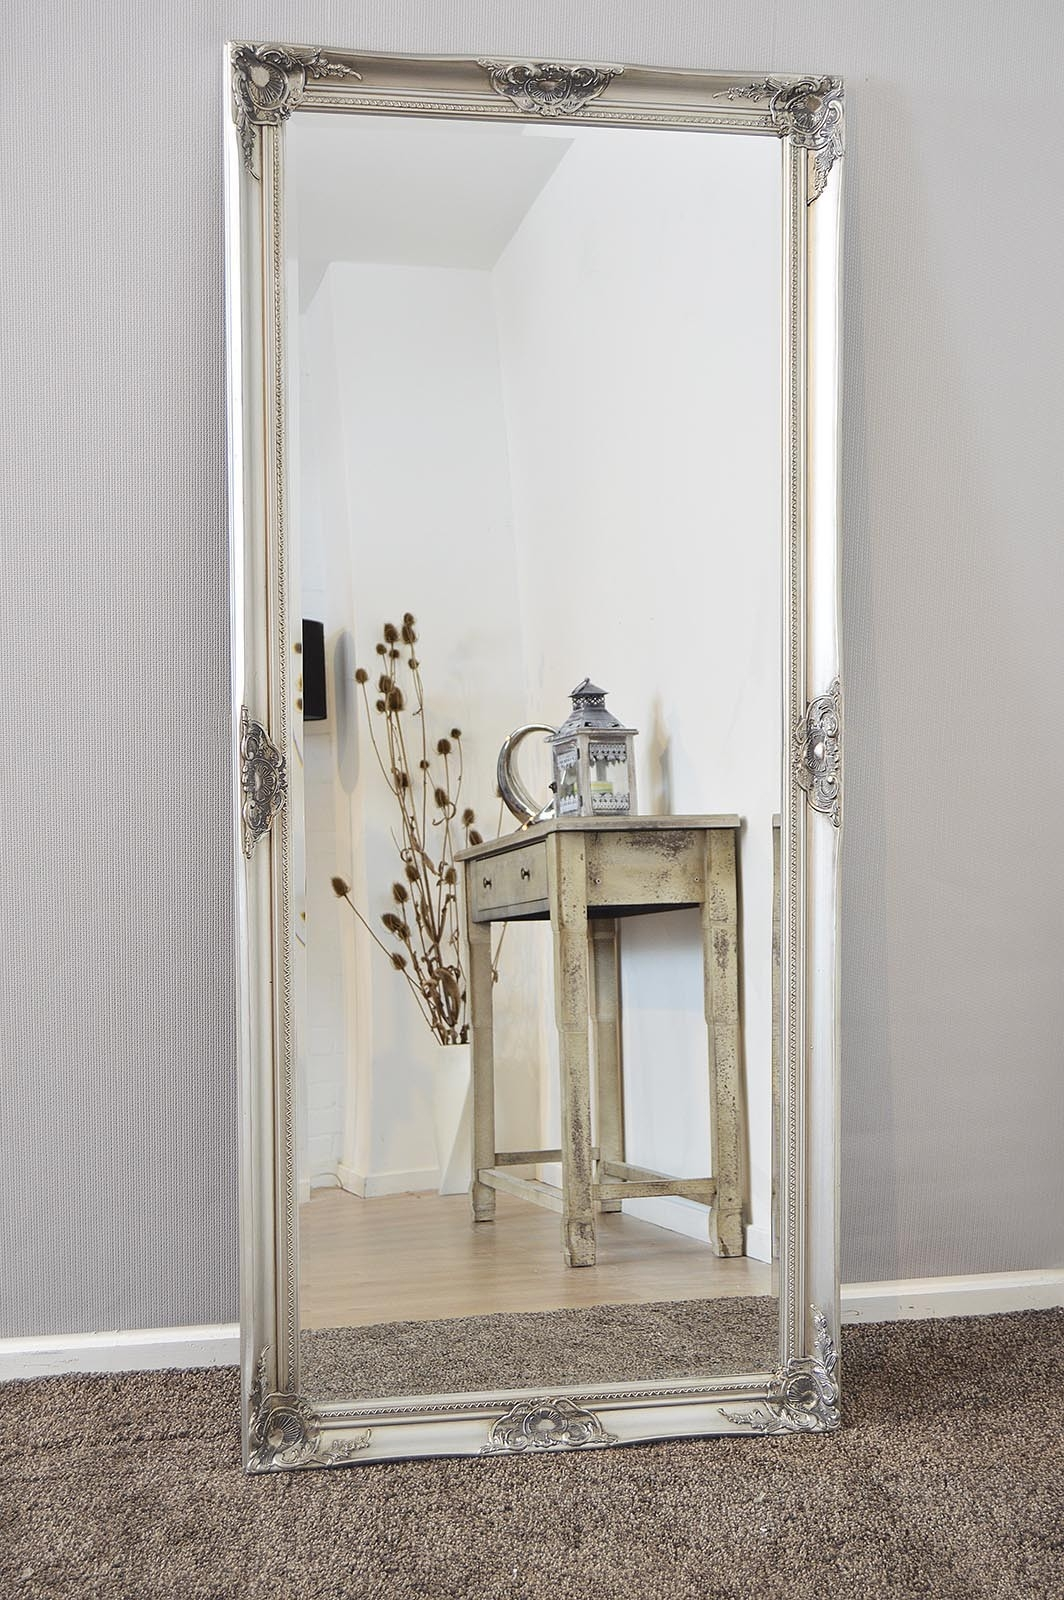 New Large Silver Decorative Shab Chic Wall Mirror 5ft3 X 2ft5 Regarding White Shabby Chic Wall Mirror (Image 7 of 15)